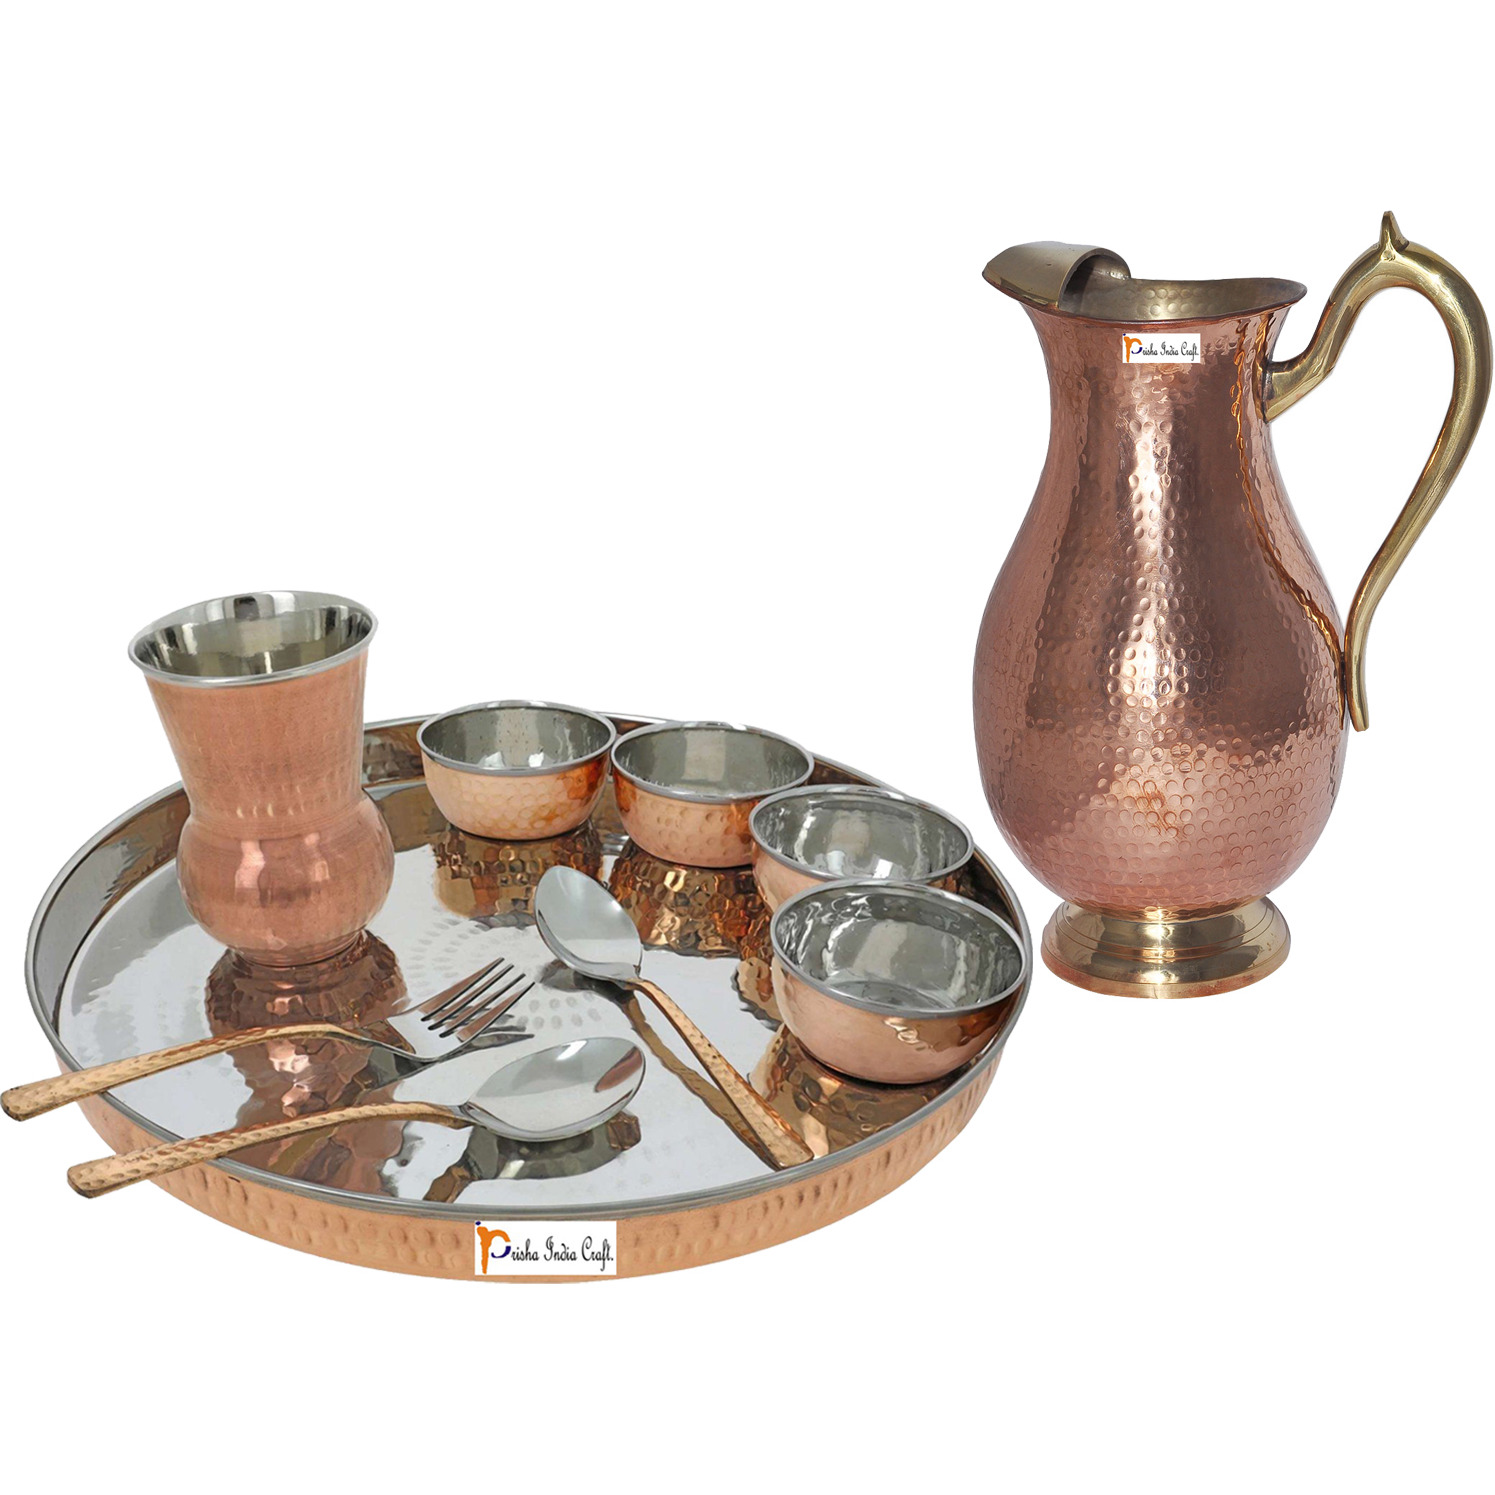 Prisha India Craft B. Dinnerware Traditional Stainless Steel Copper Dinner Set of Thali Plate, Bowls, Glass and Spoons, Dia 13  With 1 Pure Copper Mughal Pitcher Jug - Christmas Gift